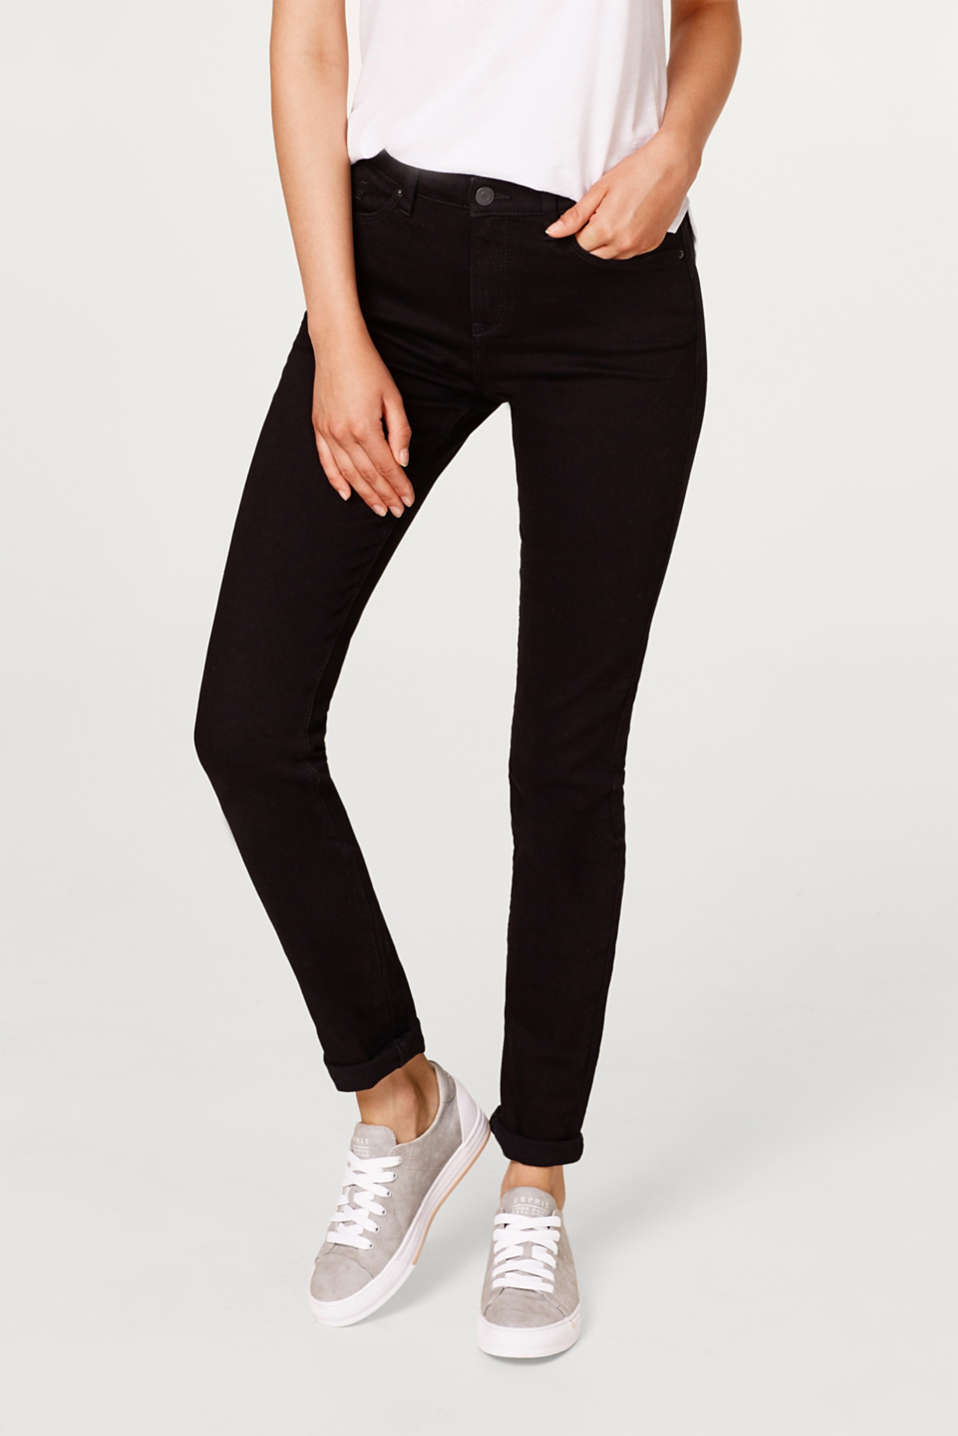 Esprit - Jean stretch en denim noir intense